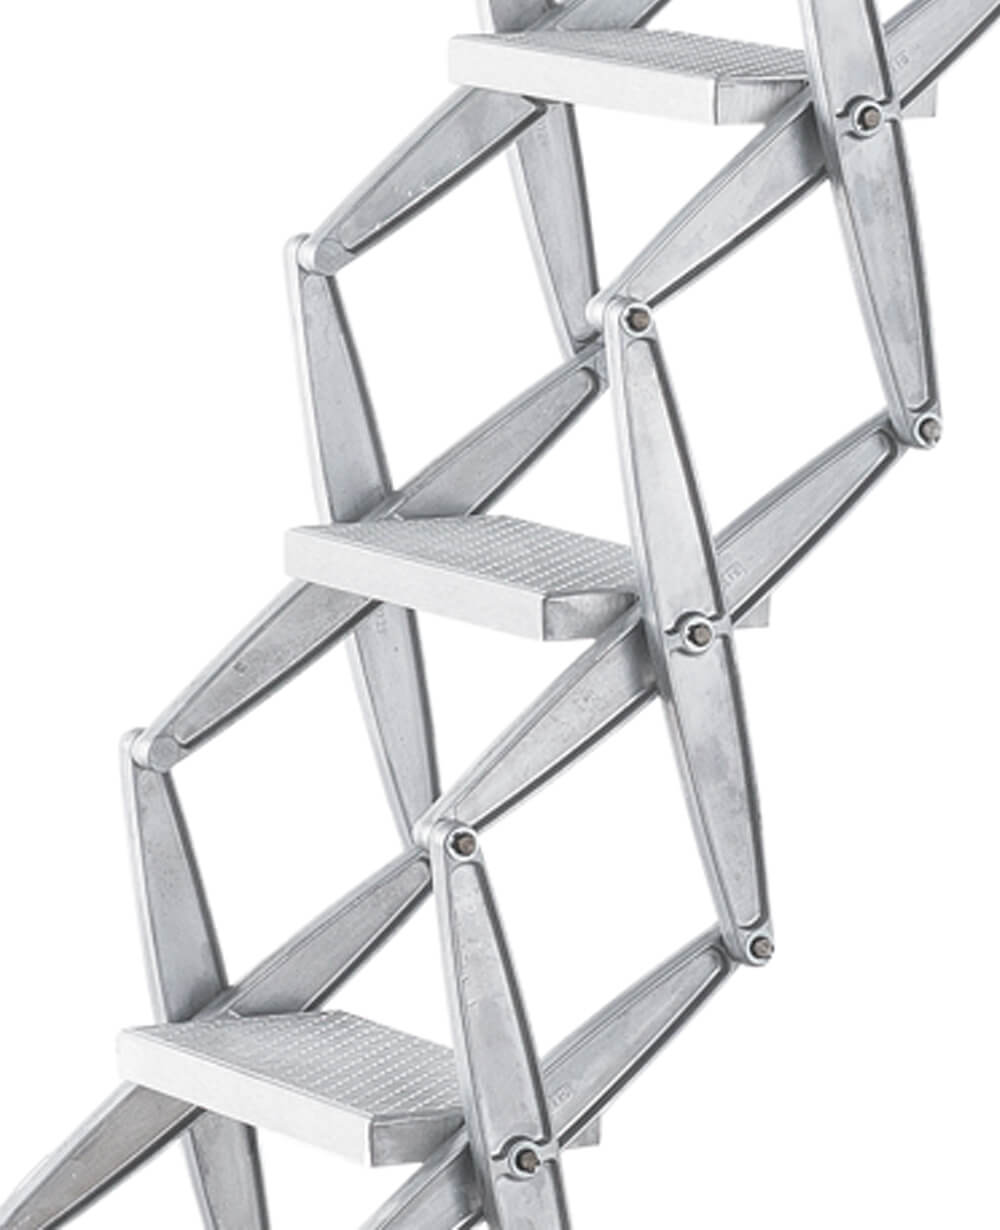 Heavy duty concertina loft ladder